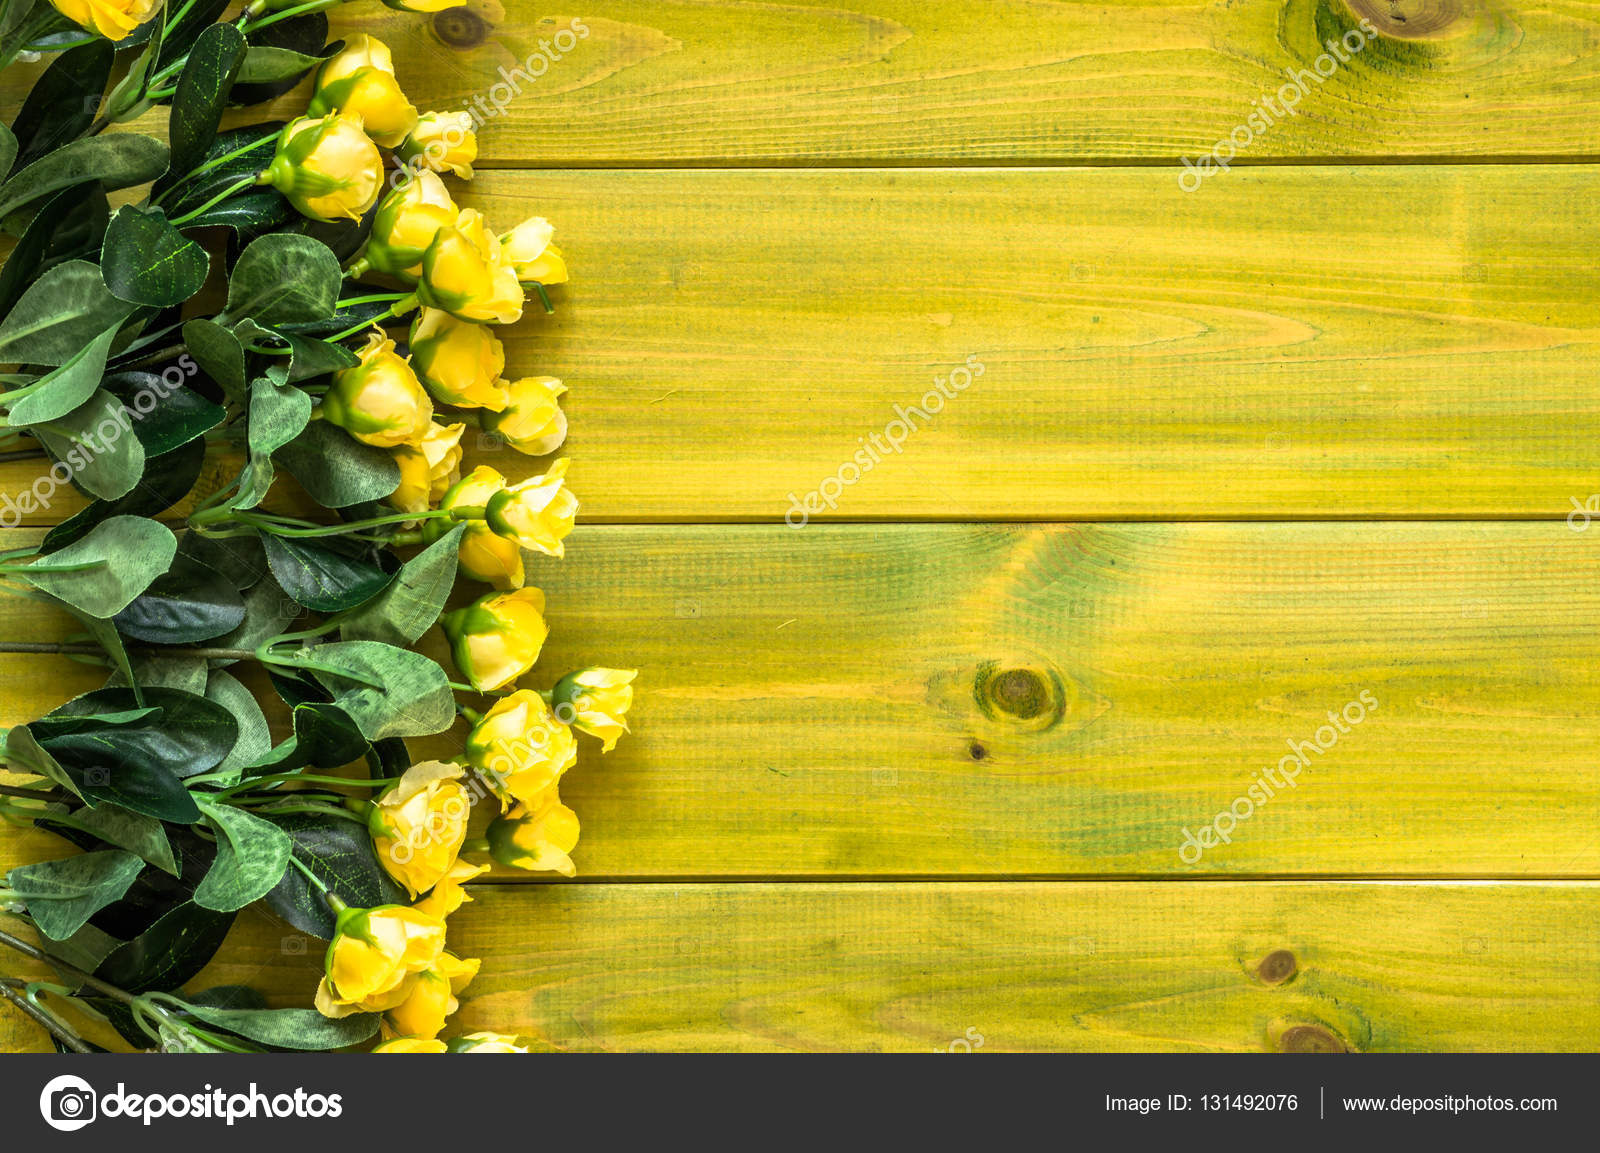 Yellow roses on wooden background flowers frame for valentine card yellow roses on wooden background flowers frame for valentine card or wedding invitation template stopboris Image collections